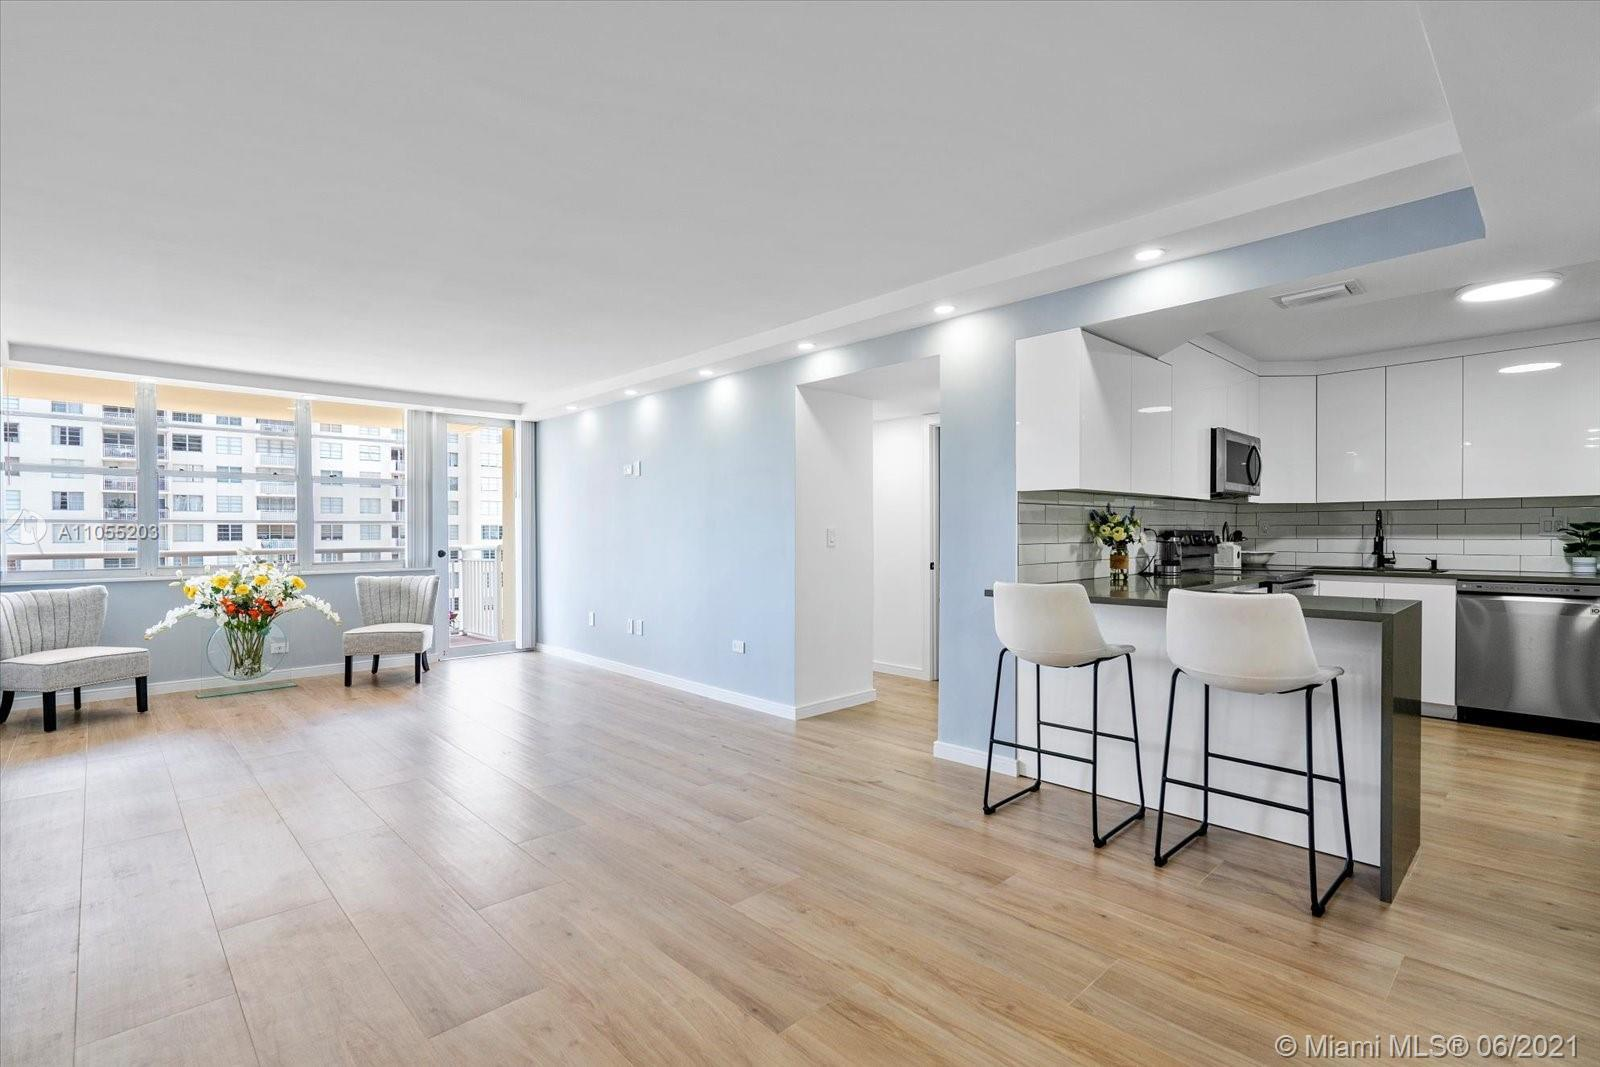 Stunning two bedroom two bathroom fully remodeled apartment located in the heart of Sunny Isles. Apa